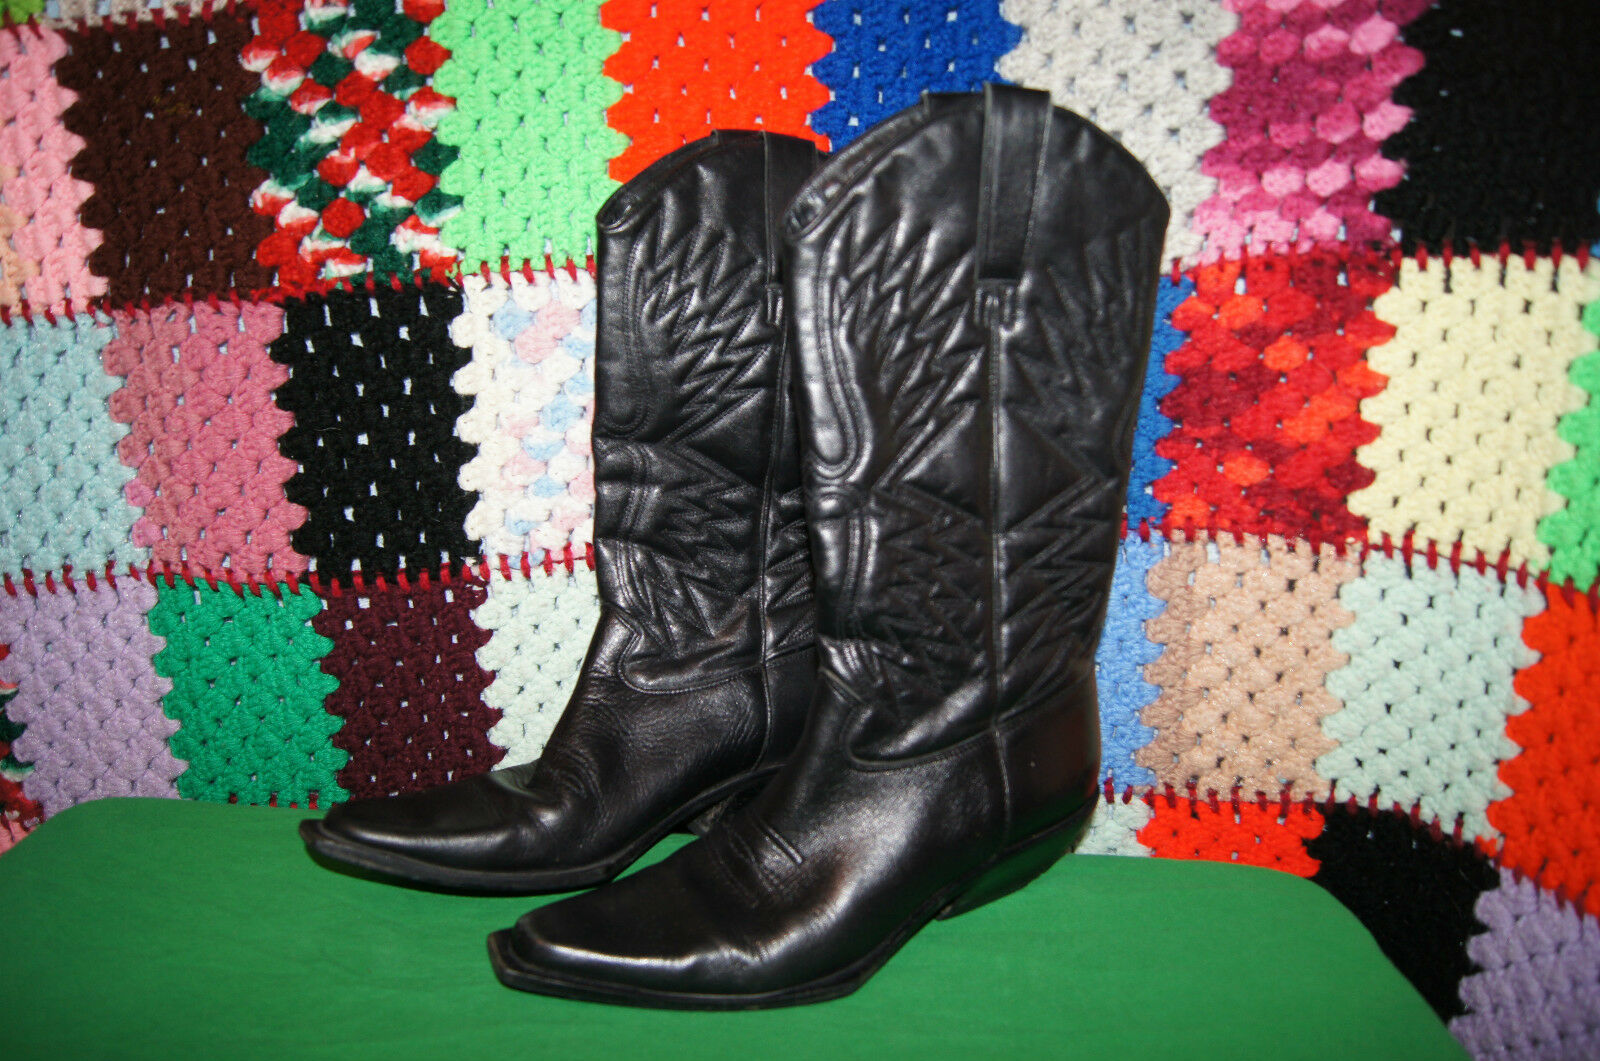 MATISSE BOOTS 6  BLACK LEATHER BOOTS 6 WESTERN BOOTS 6 SQUARE TOE BOOTS 6 M